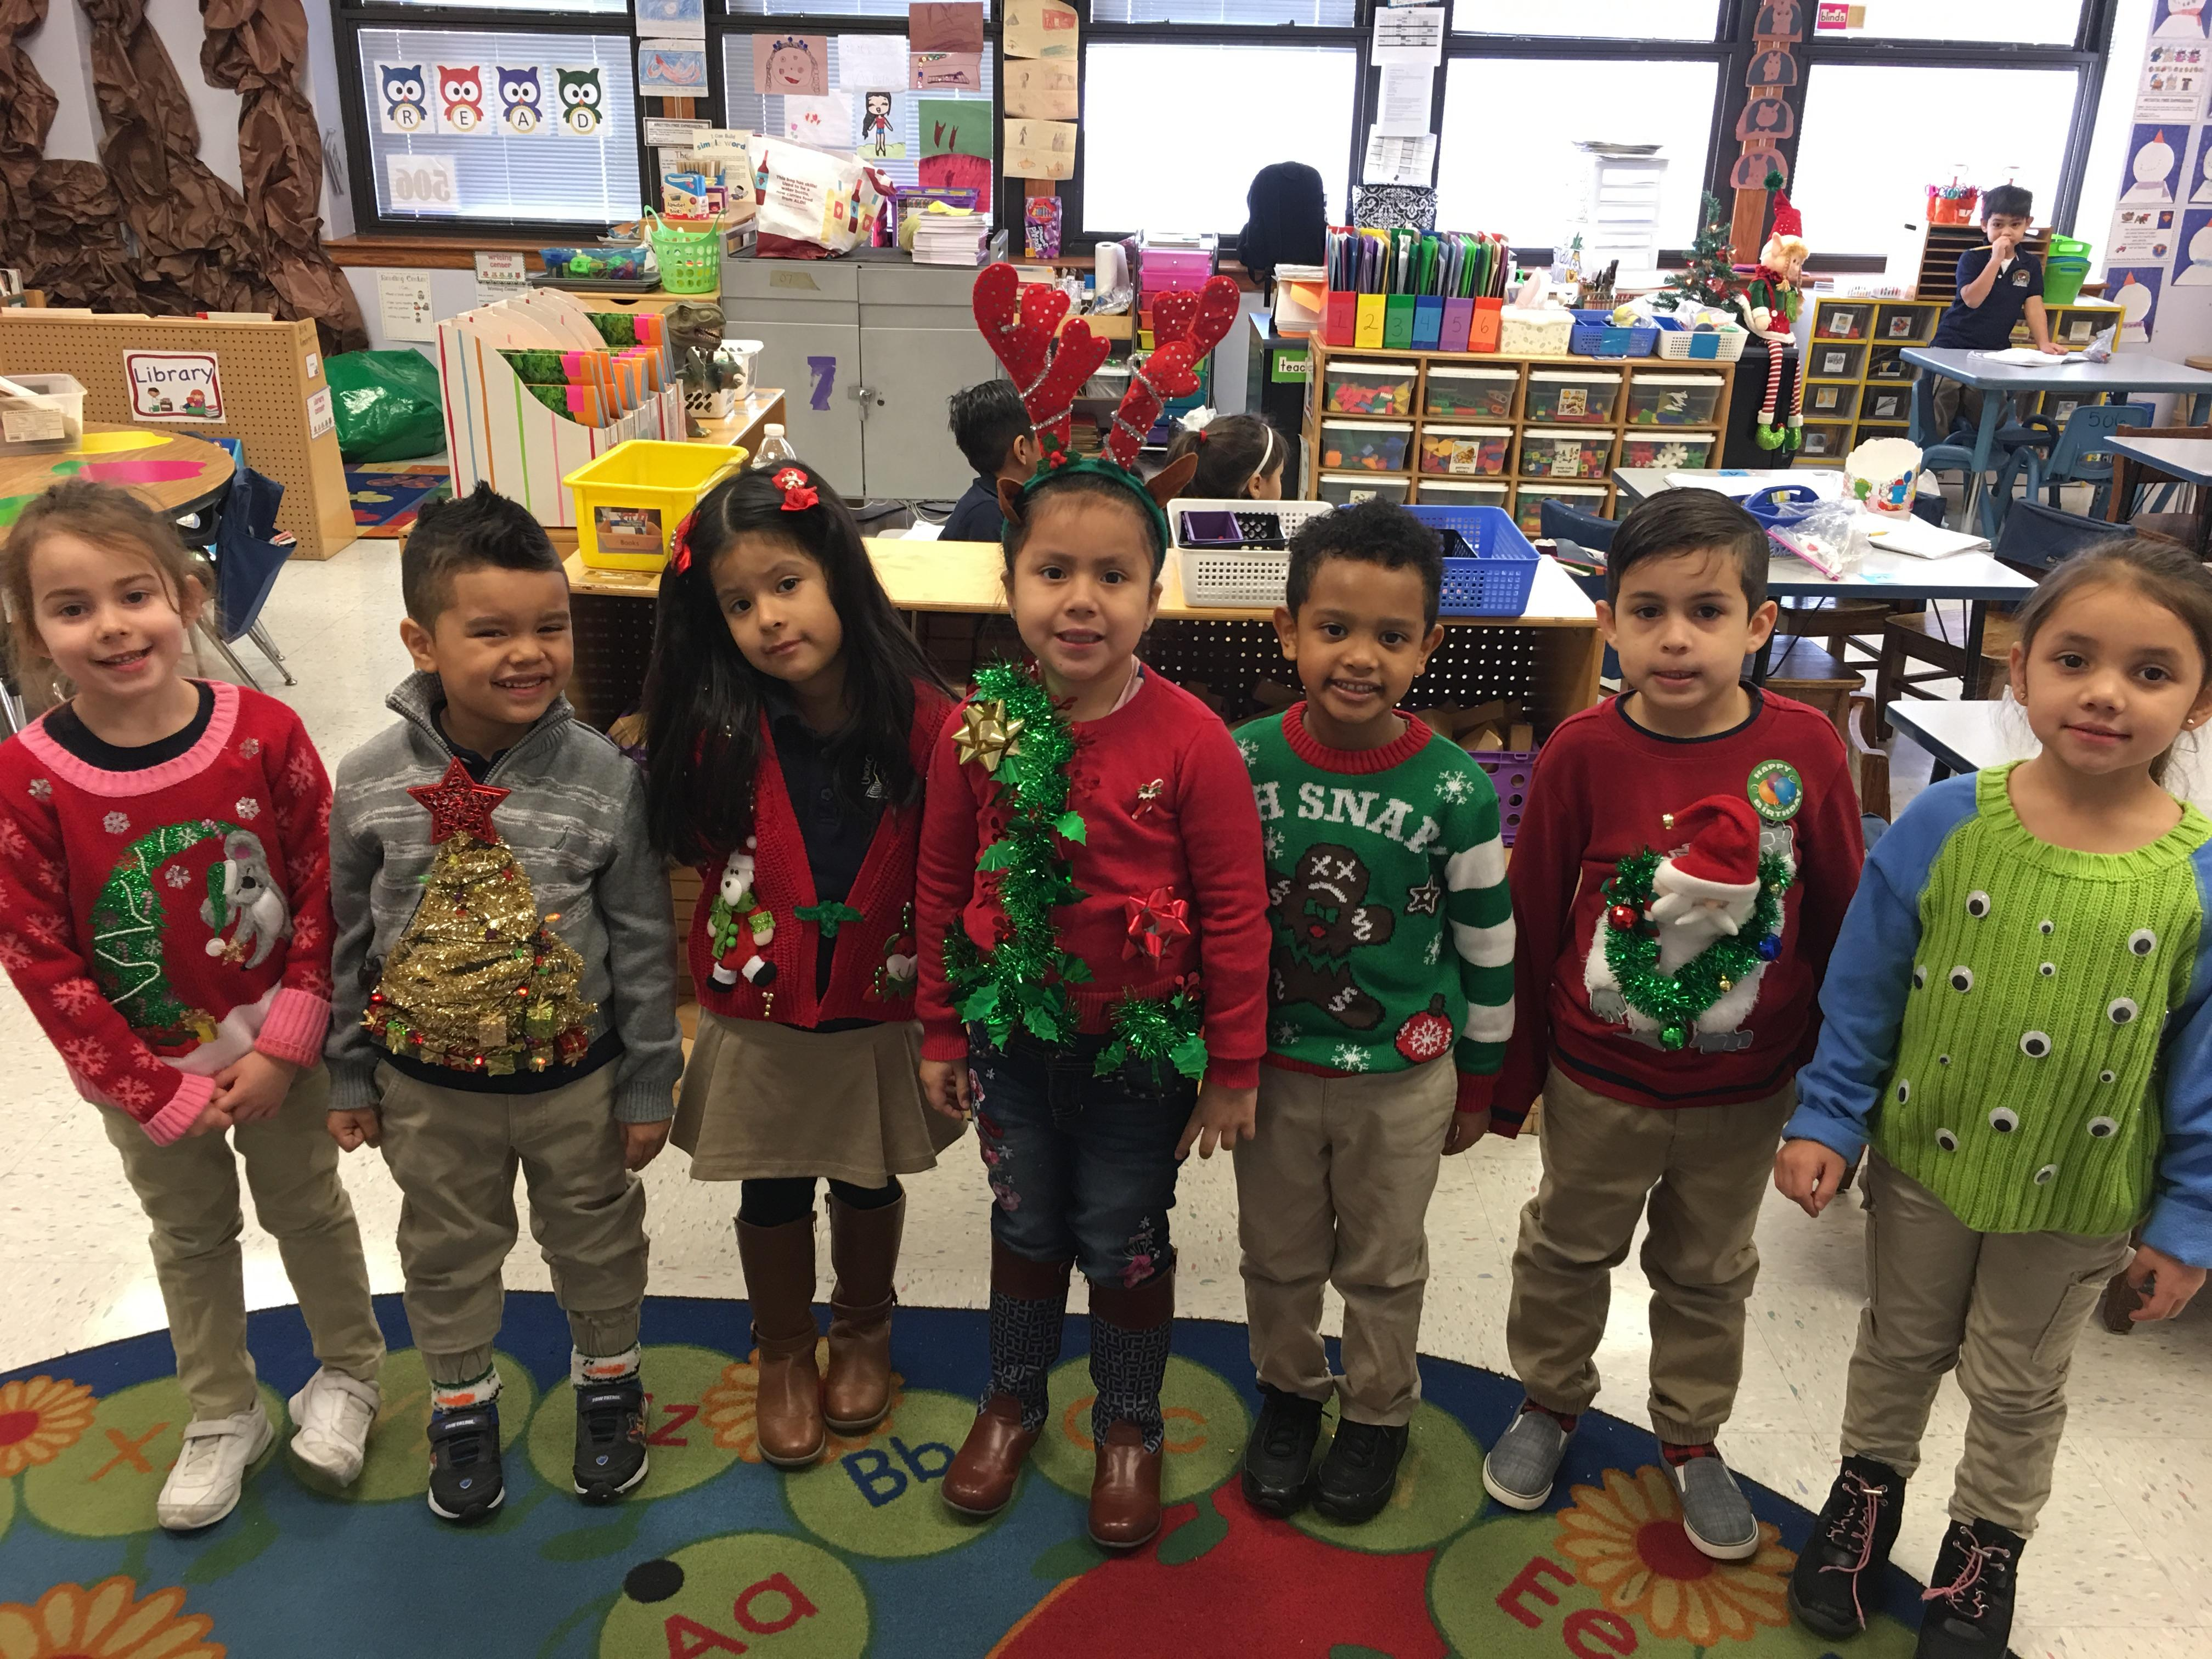 2nd graders showing off their ugly sweaters